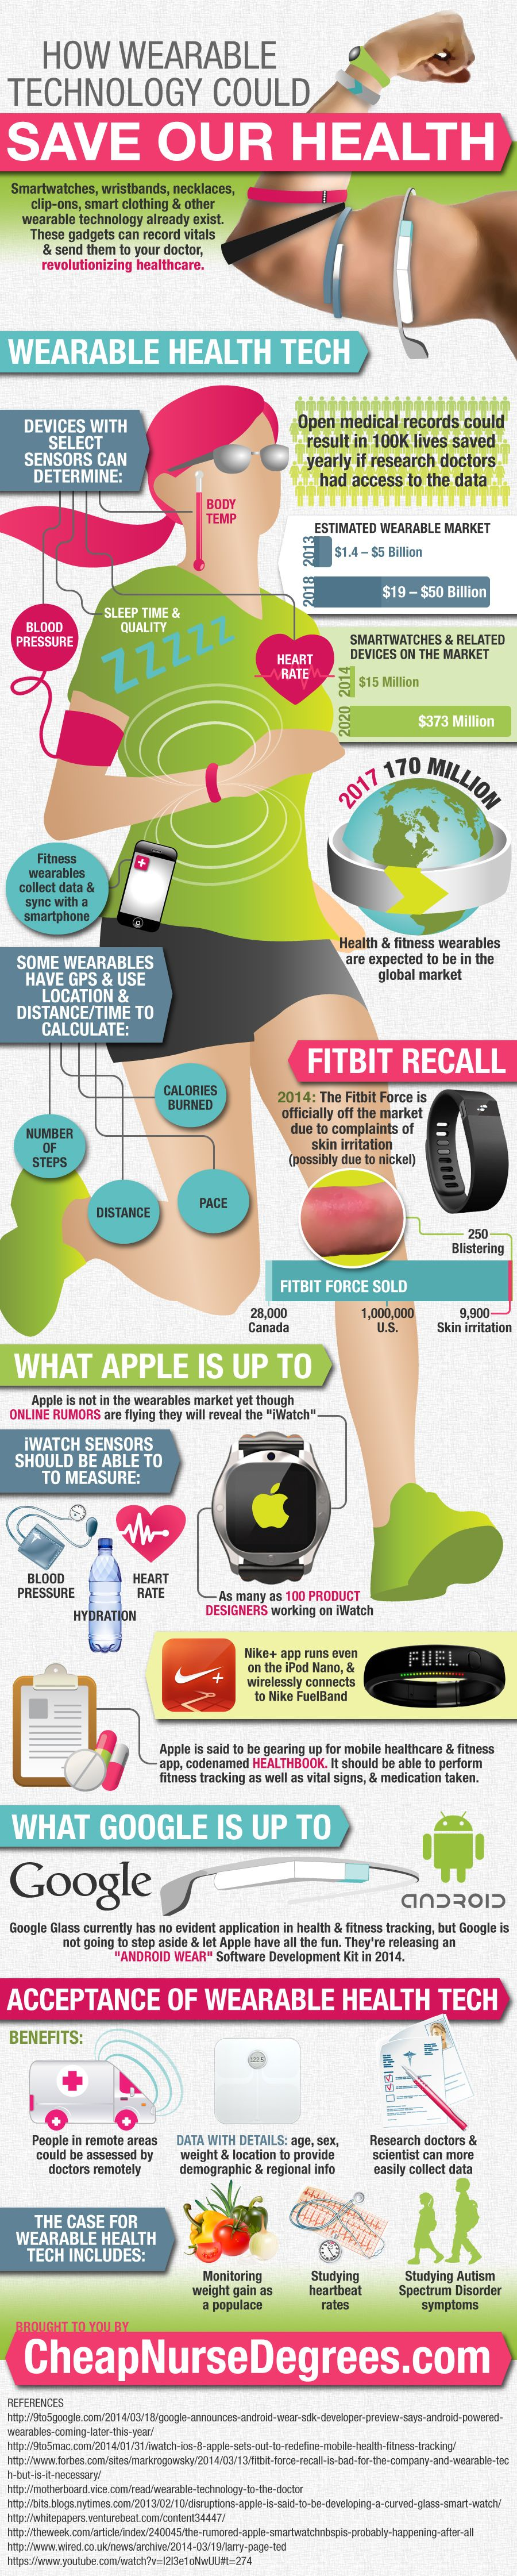 How Wearable Technology Could Save Our Health [Wearable Electronics: http://futuristicnews.com/tag/wearable/ The Future of Medicine: http://futuristicnews.com/tag/future-medicine/ Wearable Electronics for Sale: http://futuristicshop.com/category/smart-watches-wearable-electronics/]